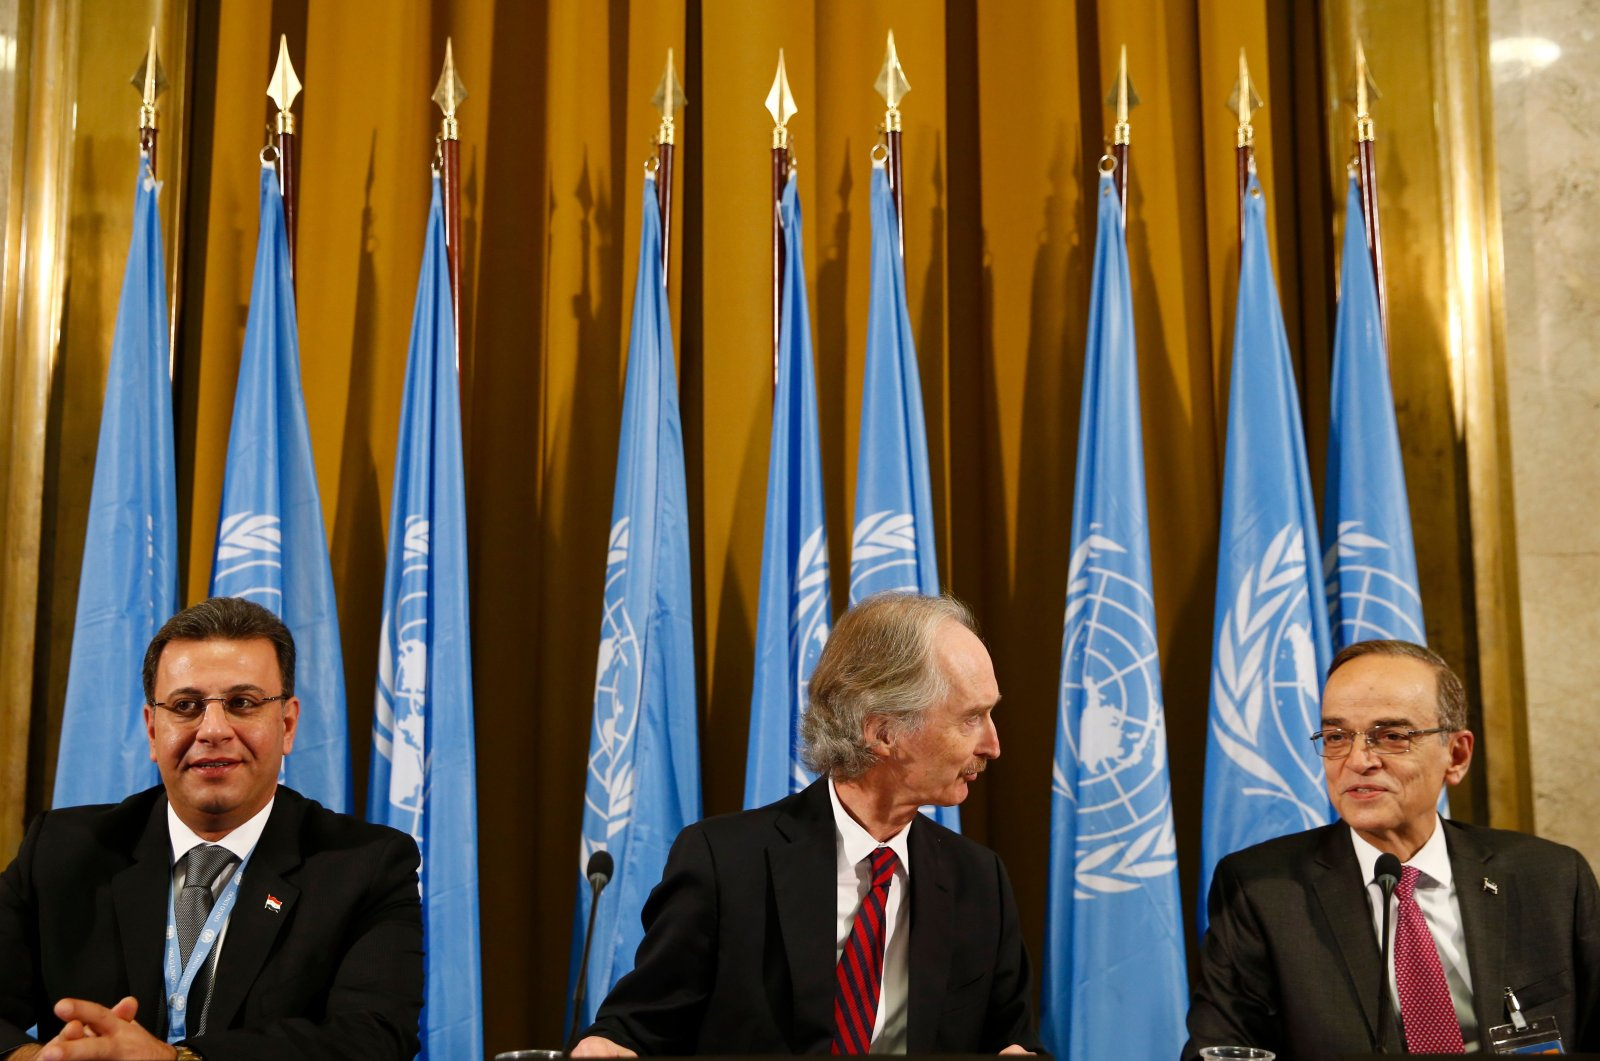 U.N. Special Envoy to Syria Geir Pedersen (C), co-chair Syrian regime MP Ahmad al-Kuzbari (L) and co-chair for the opposition Syrian Negotiations Commission Hadi al-Bahra attends a ceremony to mark the opening of a meeting of the Syria constitution-writing committee at the United Nations Offices in Geneva, Oct. 30, 2019. (AFP)